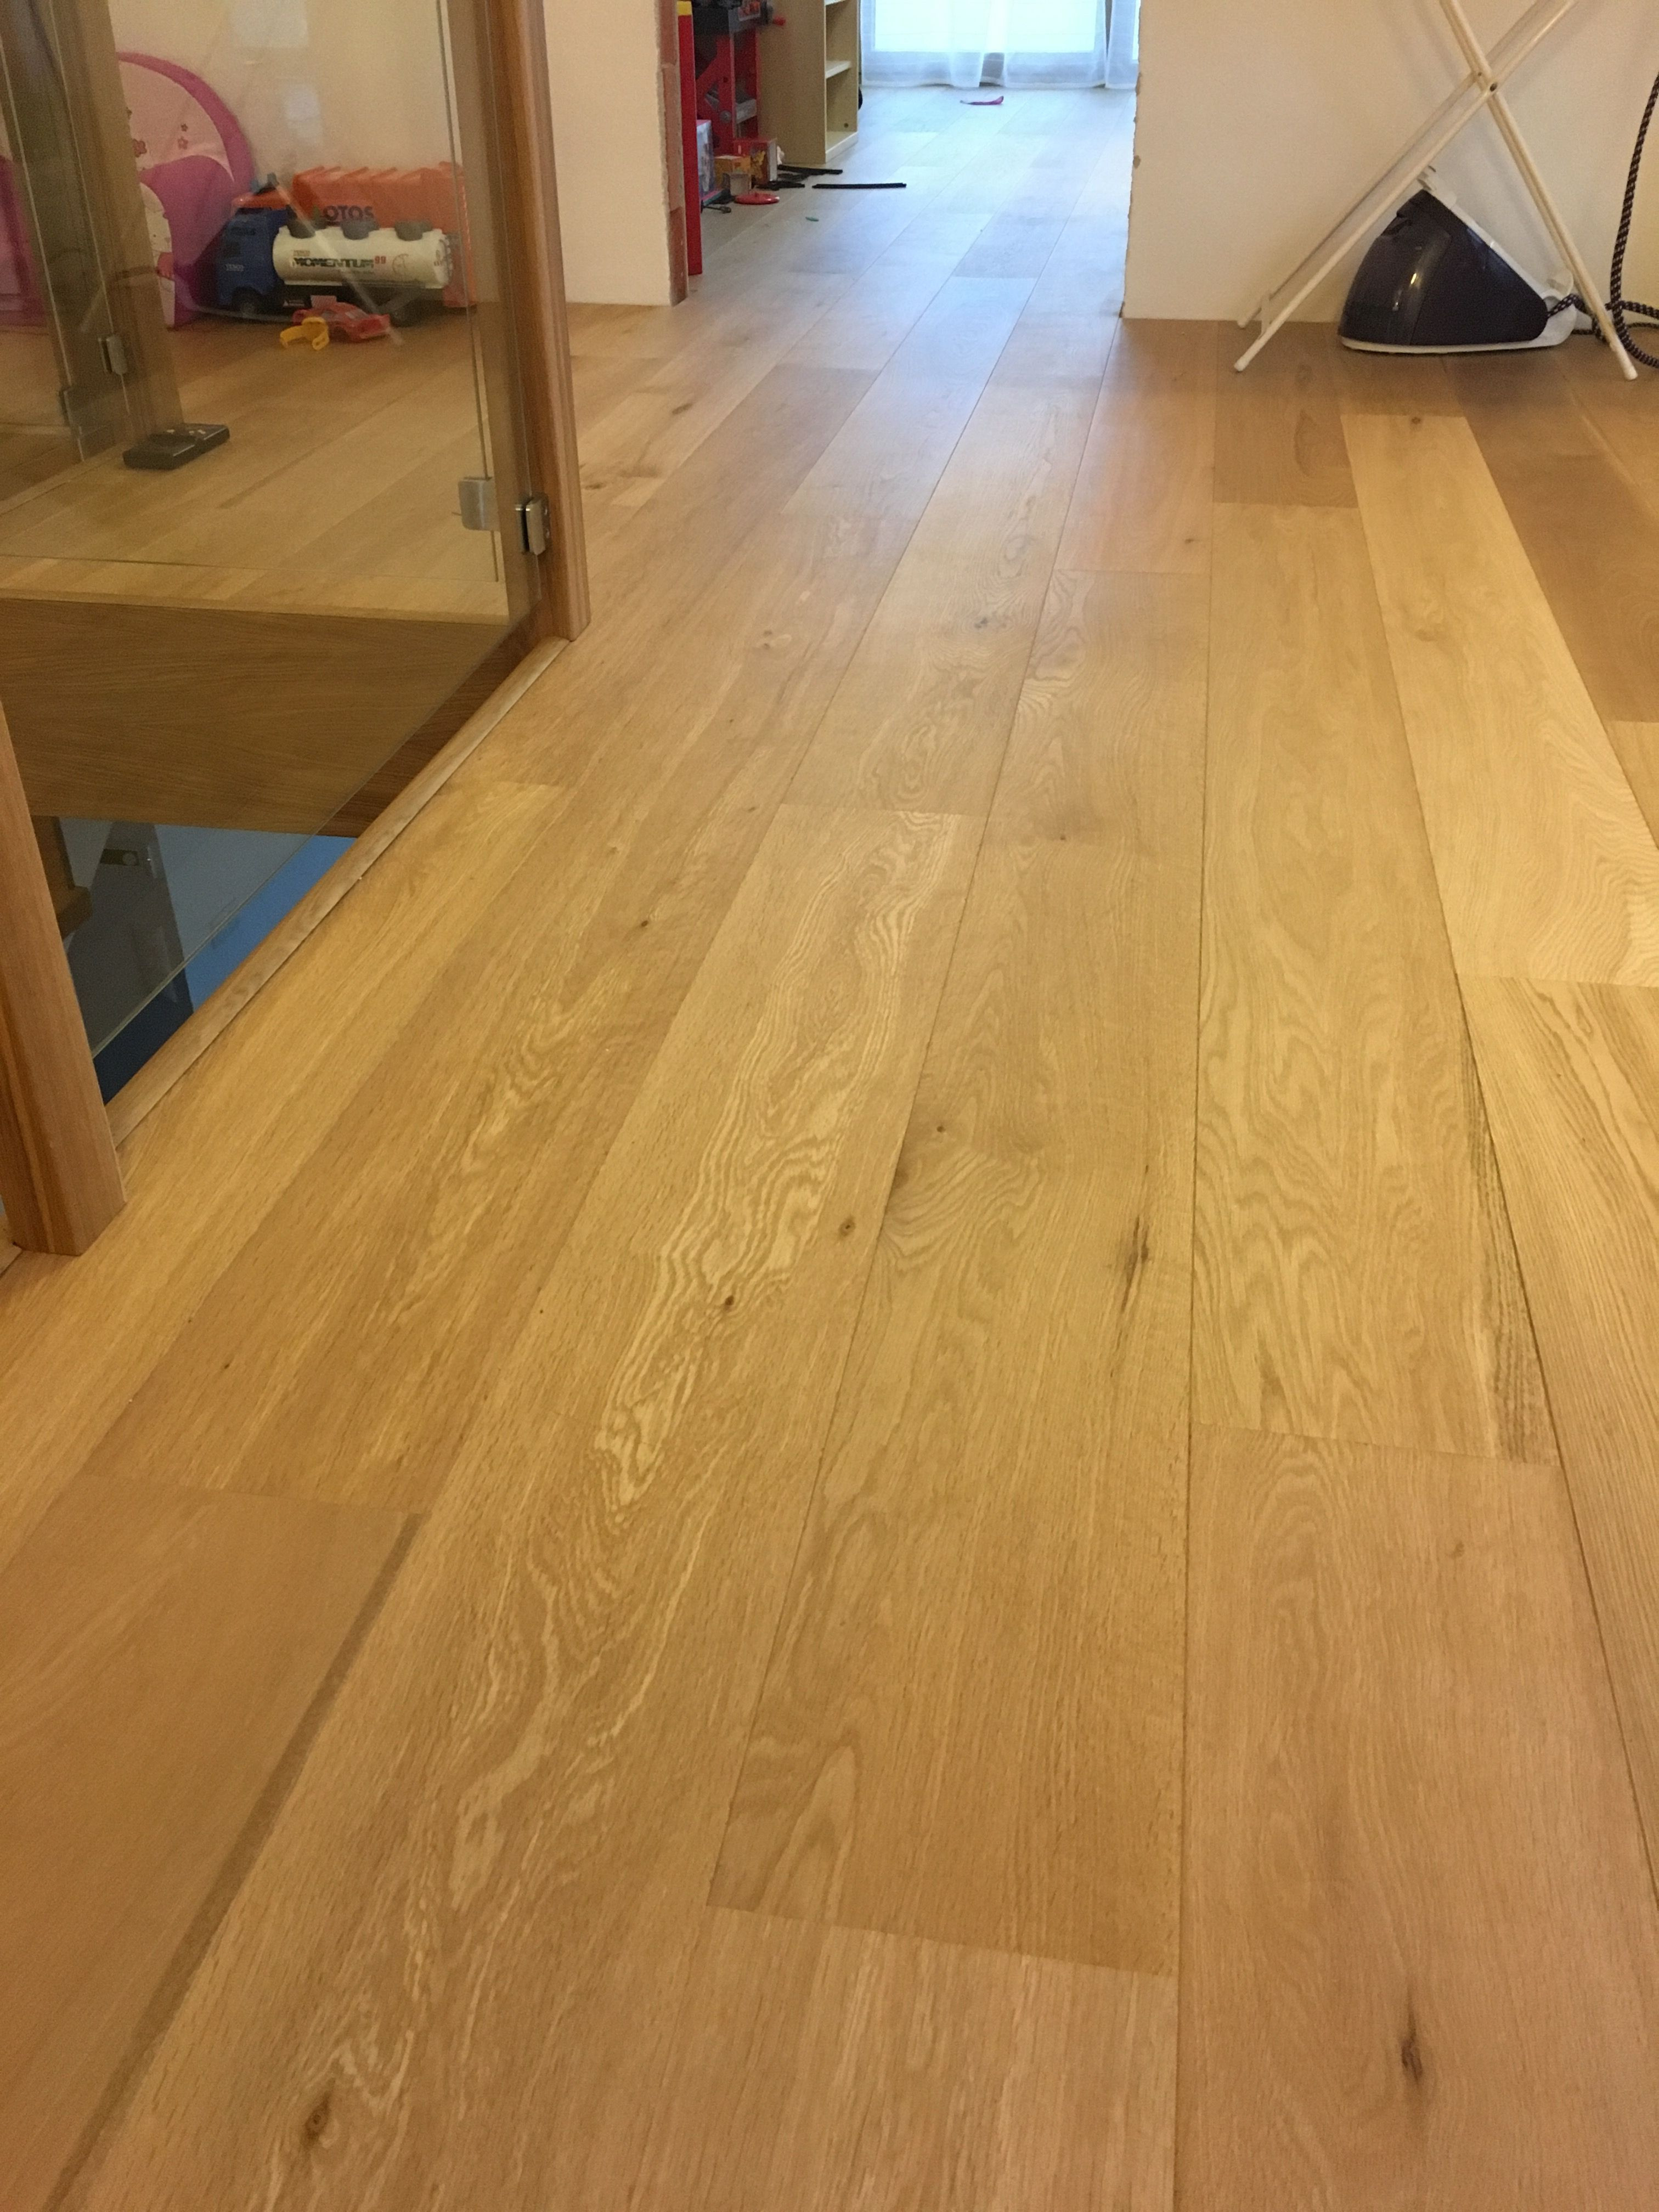 hardwood flooring stores near me of prepossessing waterproof wood flooring for bathrooms at naturalny with regard to prepossessing waterproof wood flooring for bathrooms at naturalny dub od belgickaho va½robcu lamett inspiration waterproof